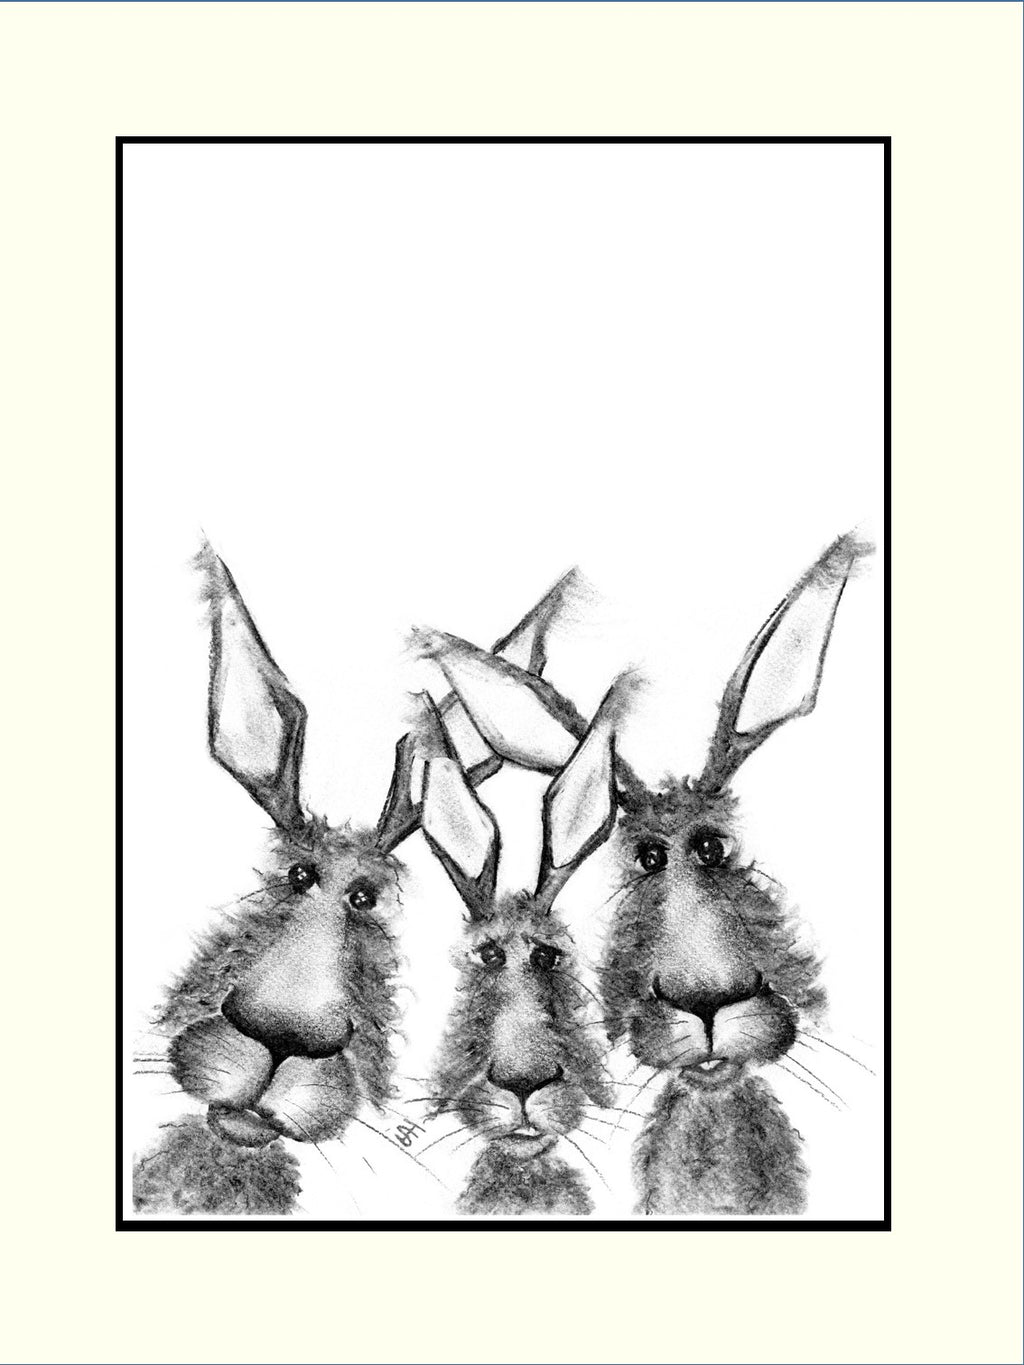 Harry Lewis & William Mounted Hare Print | GORGEOUS GEORGE